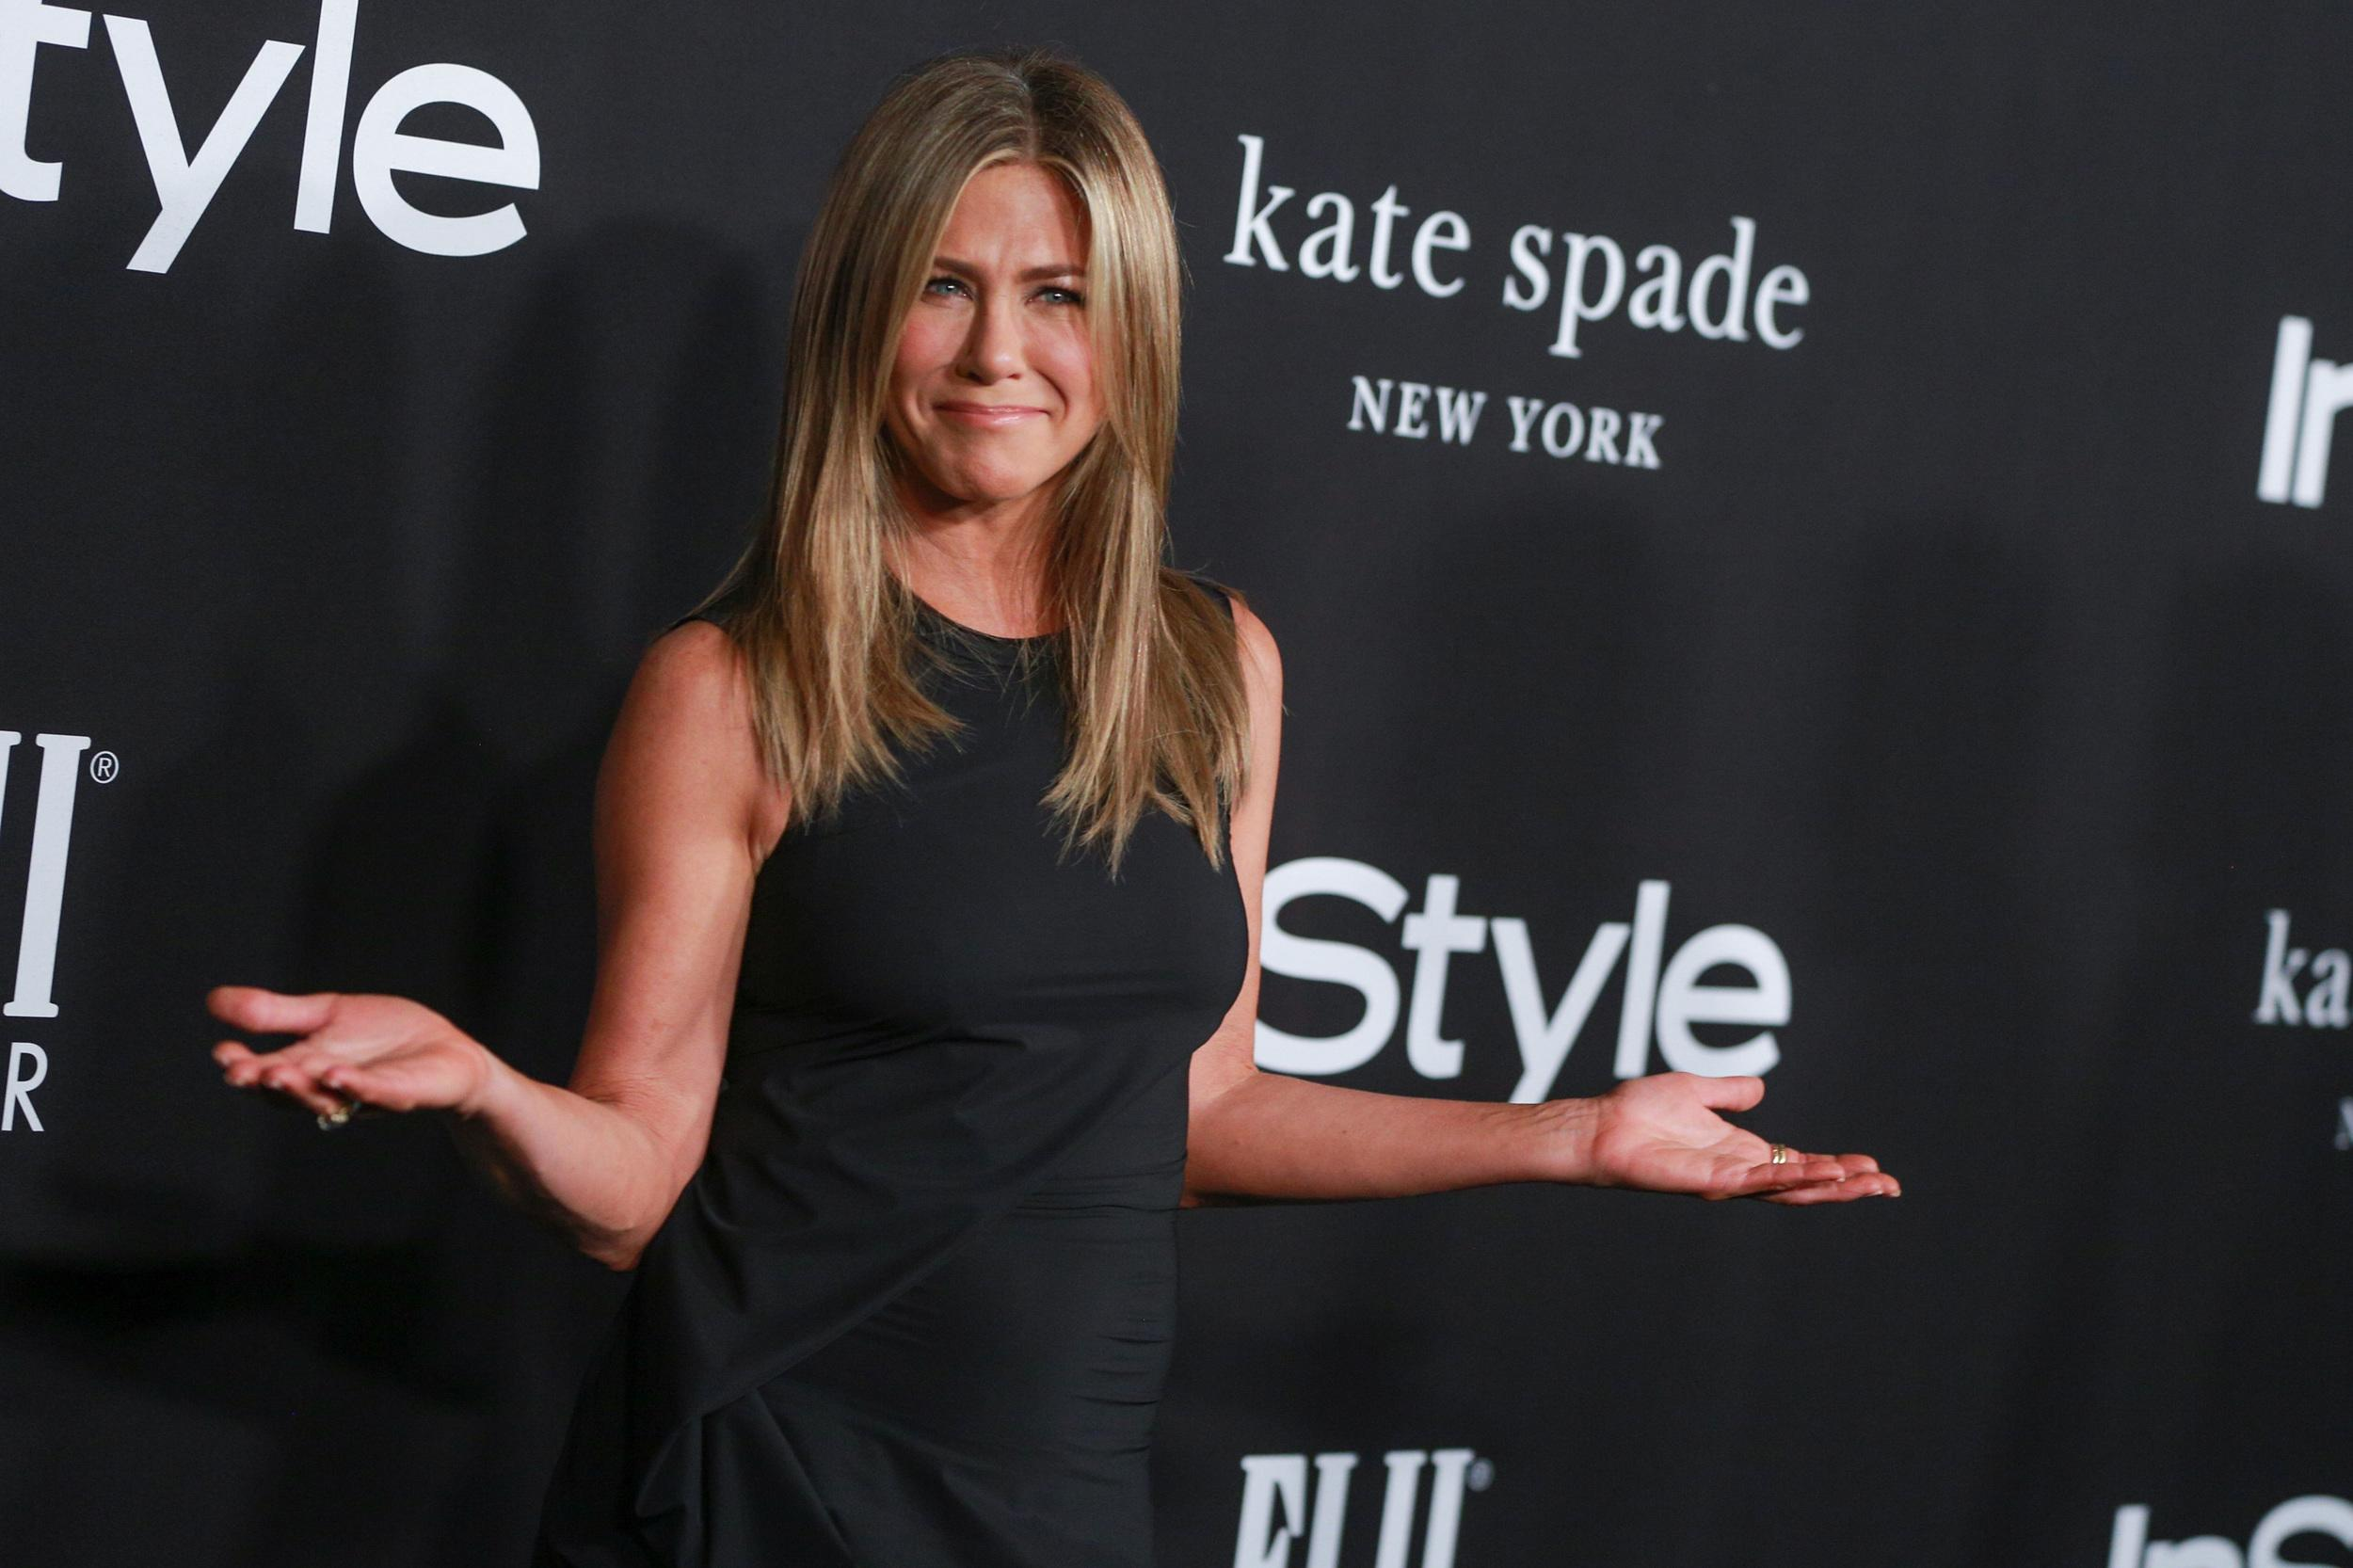 LOS ANGELES, CA - OCTOBER 22:  Jennifer Aniston attends the 2018 InStyle Awards at The Getty Center on October 22, 2018 in Los Angeles, California.  (Photo by Rich Fury/Getty Images)